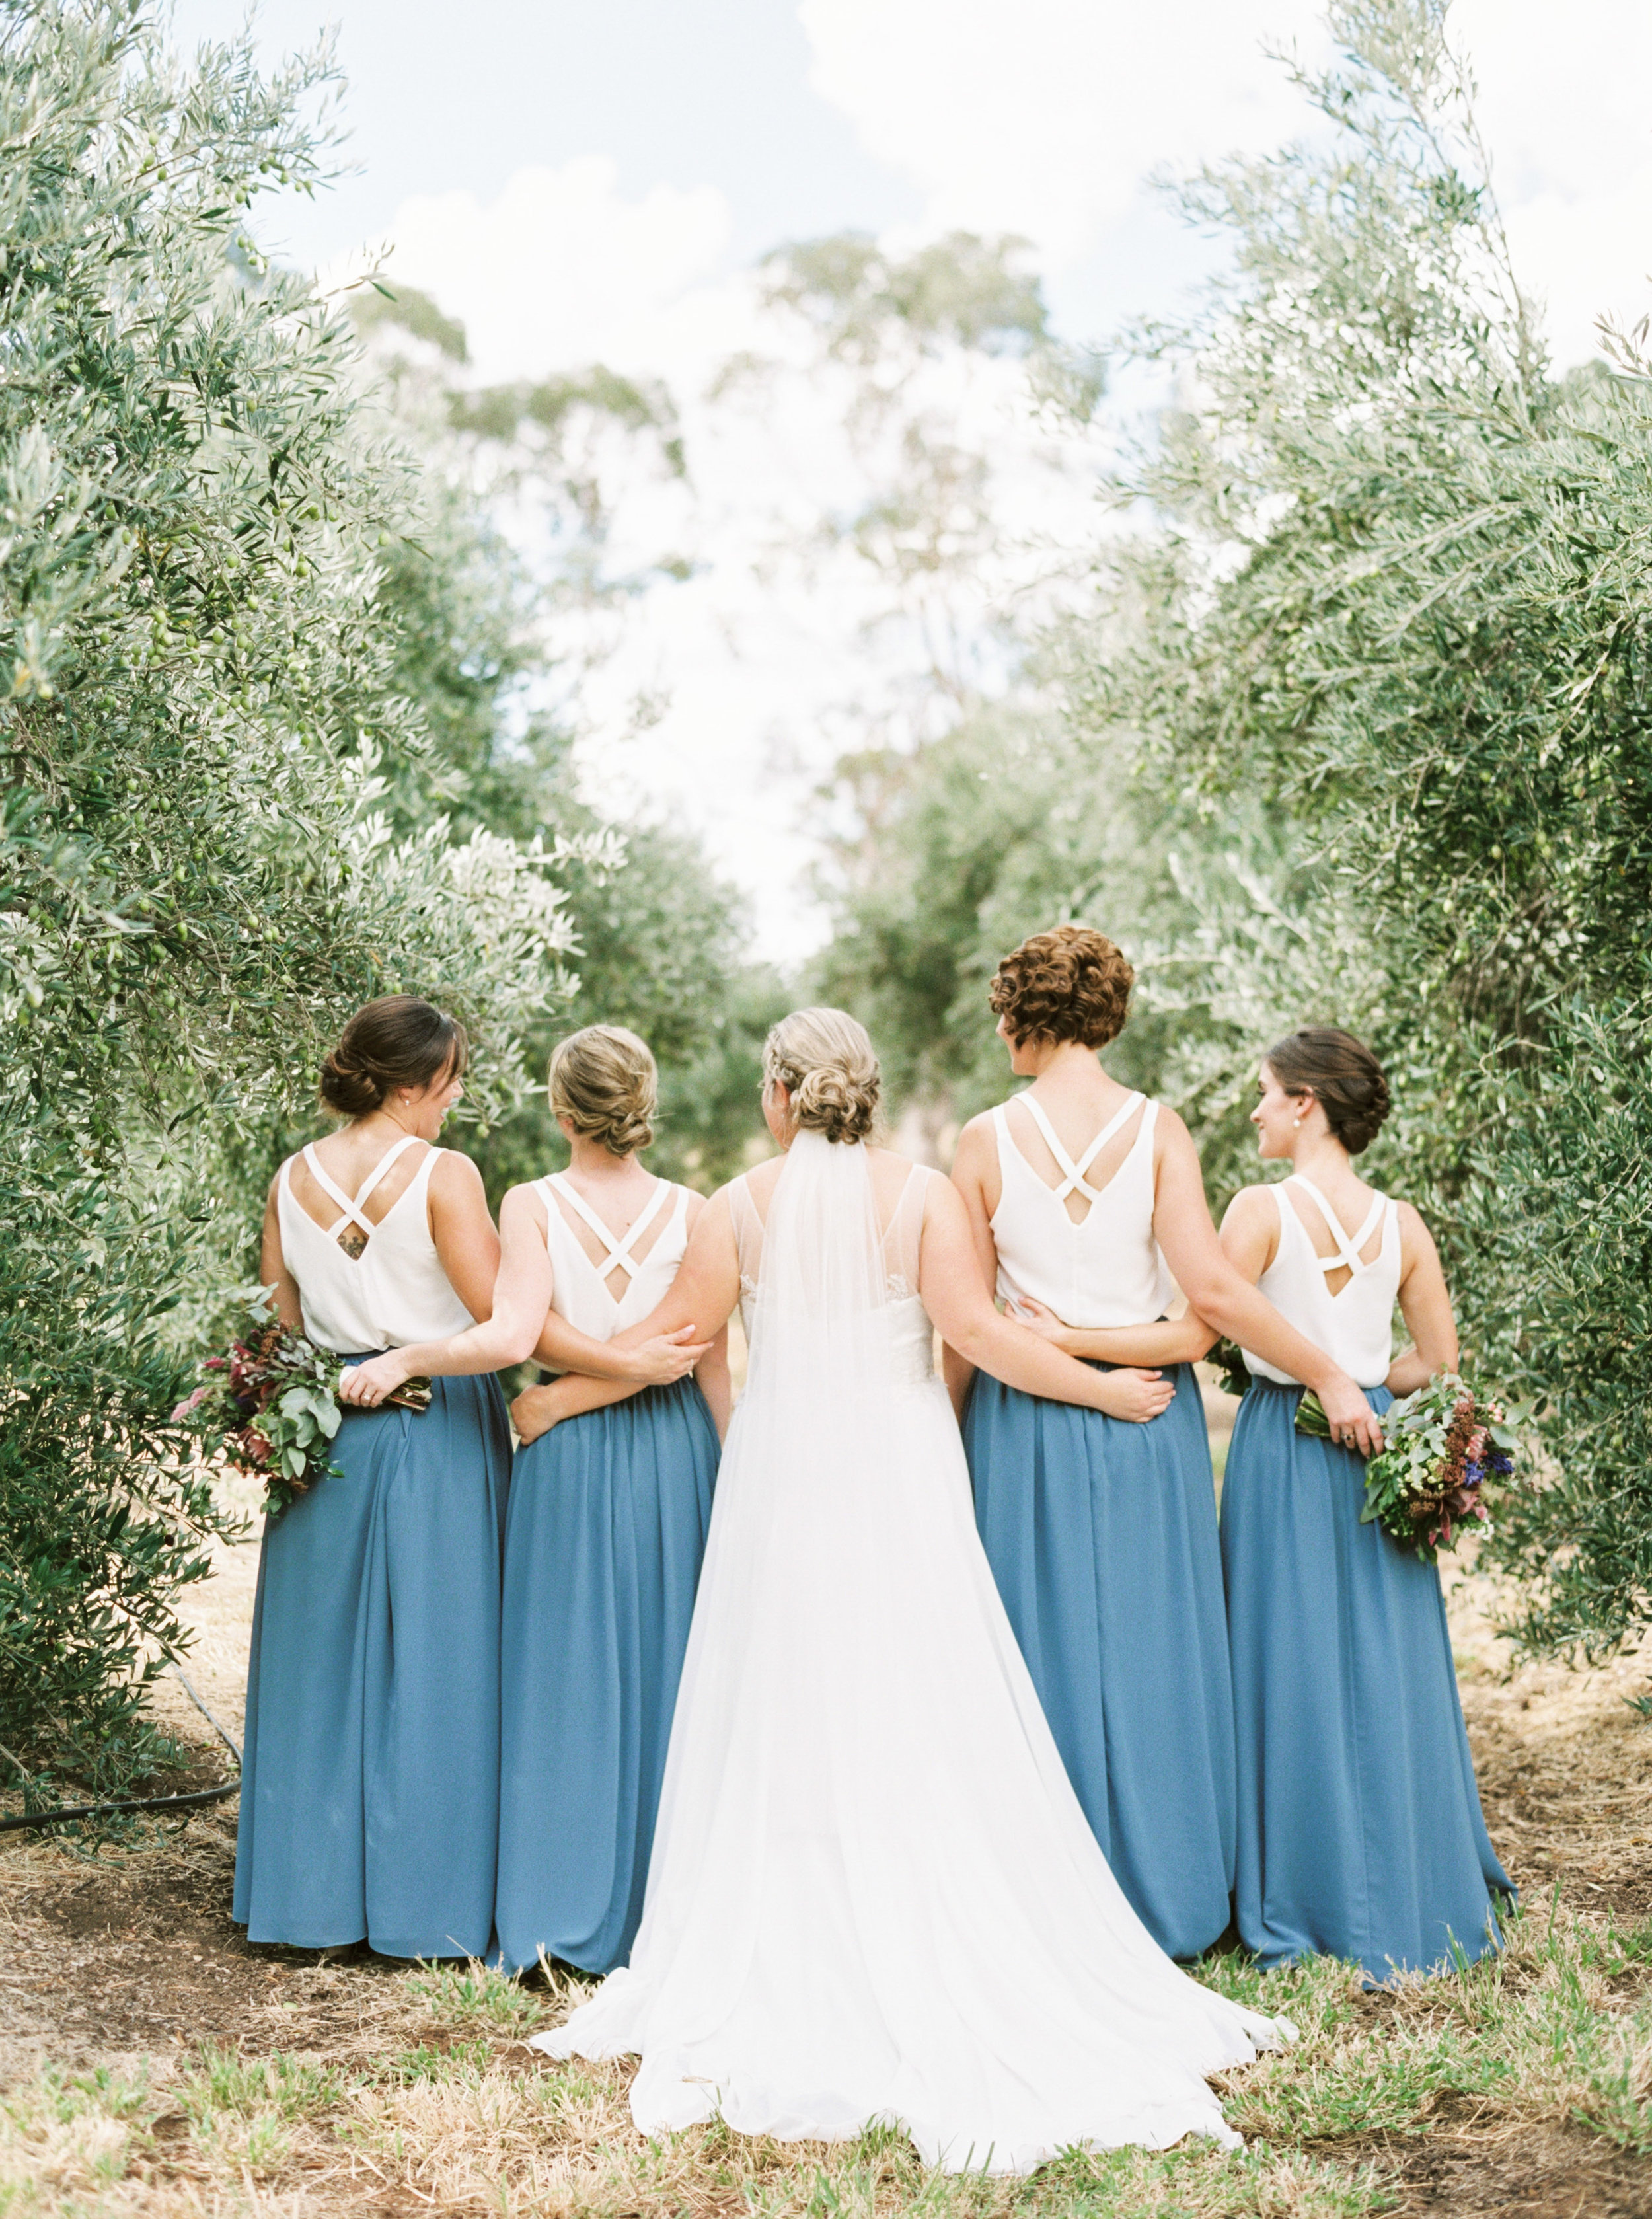 00038- Fine Art Film NSW Mudgee Wedding Photographer Sheri McMahon.jpg